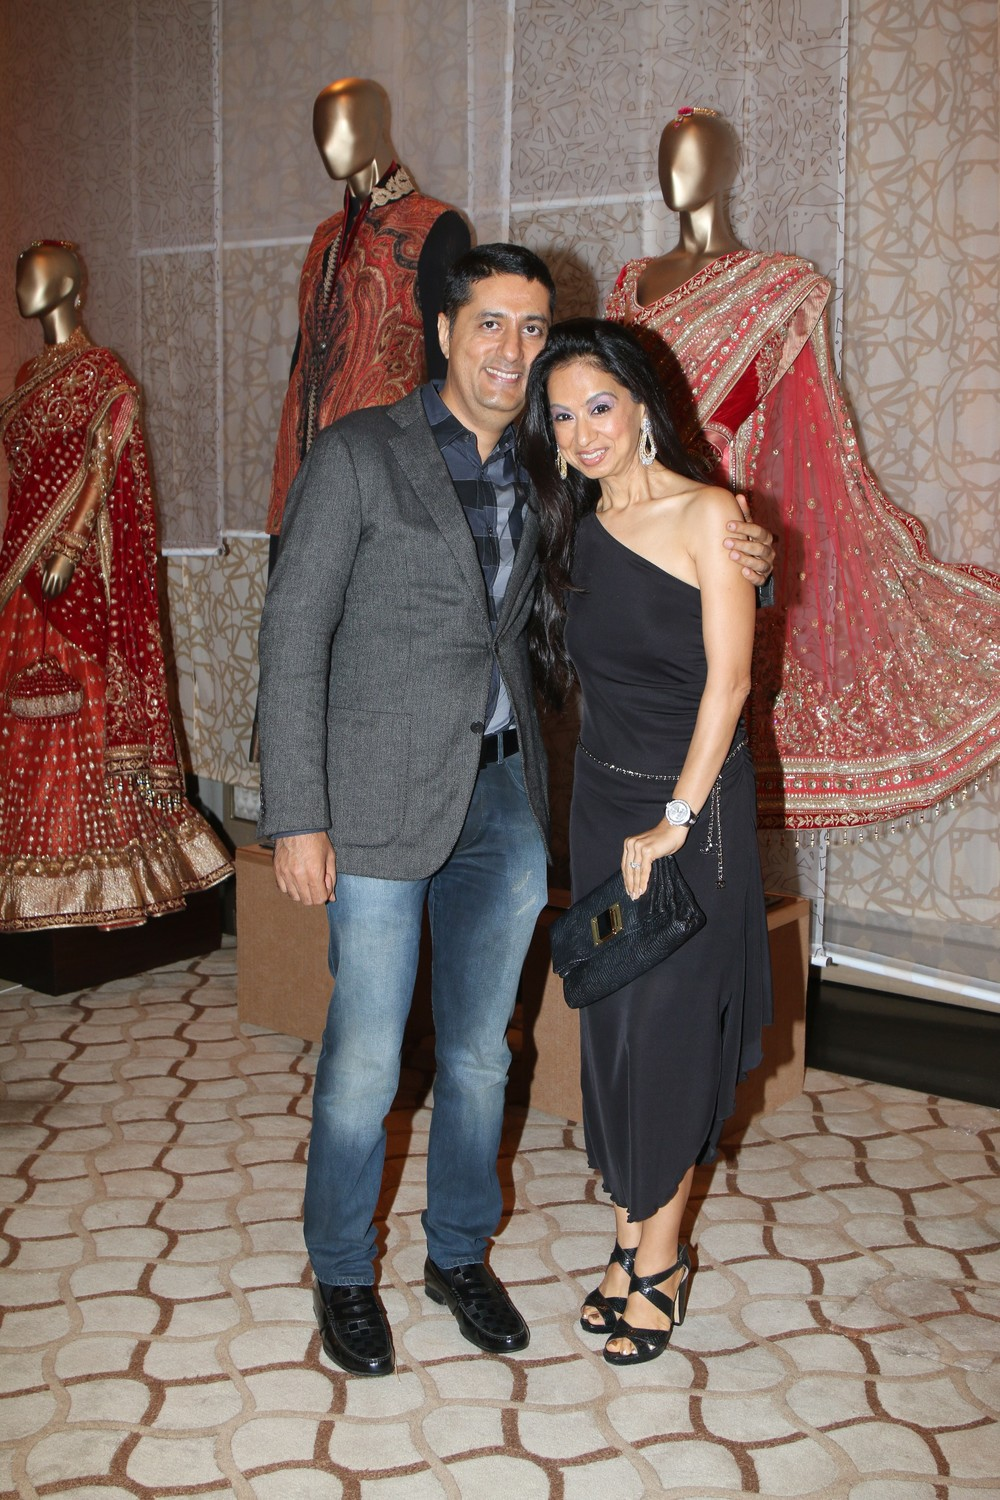 Sunil Datwani of Gehna Jewelers along with his wife